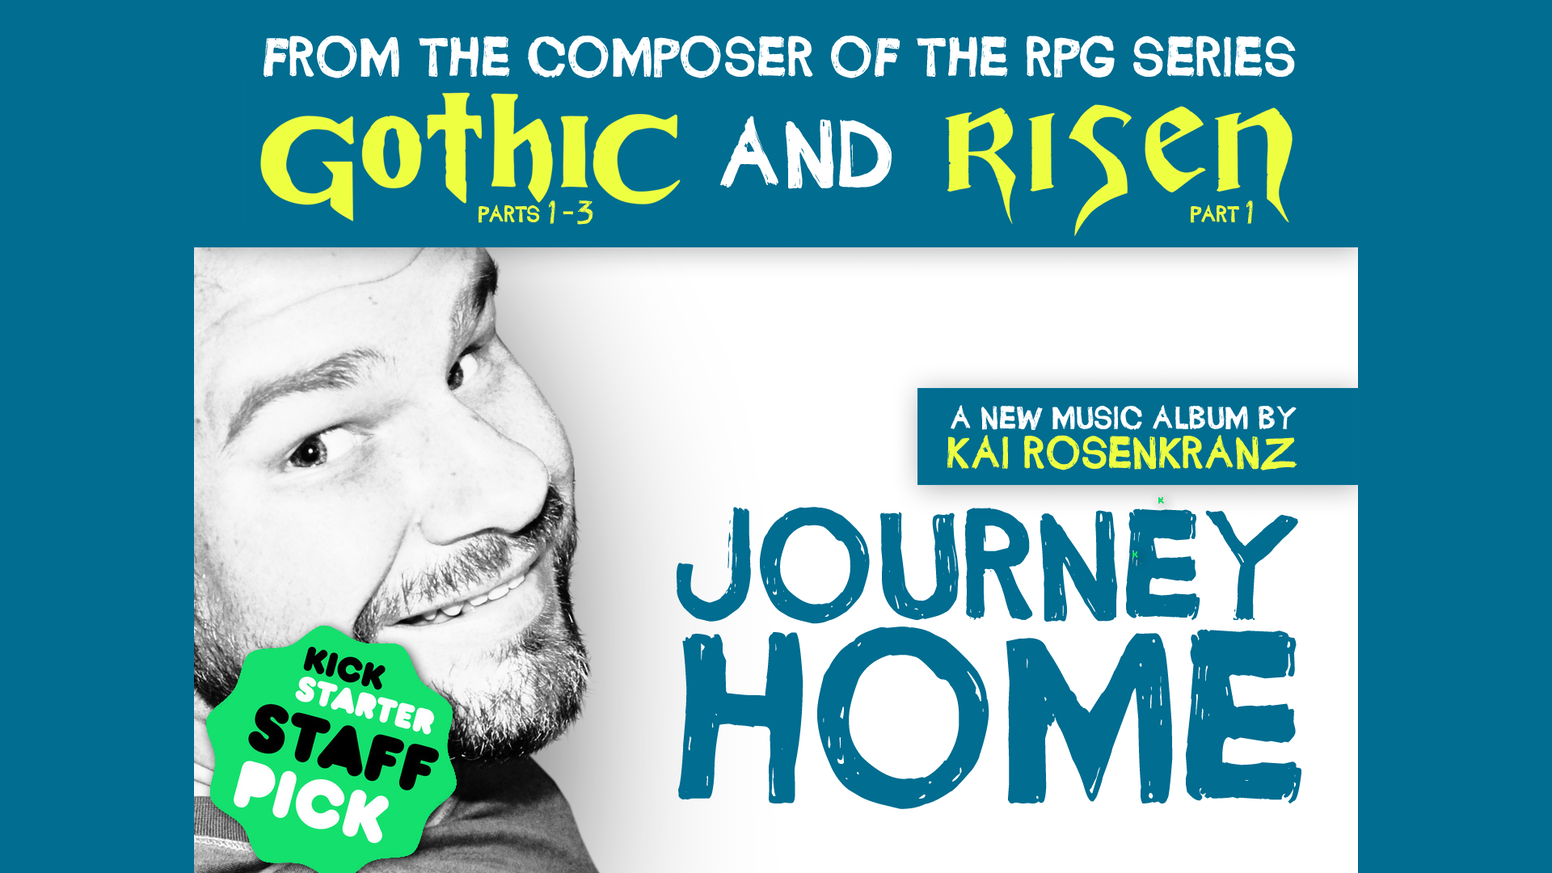 kai rosenkranz is making a new album journey home by kai i wrote orchestral game music for gothic and risen now